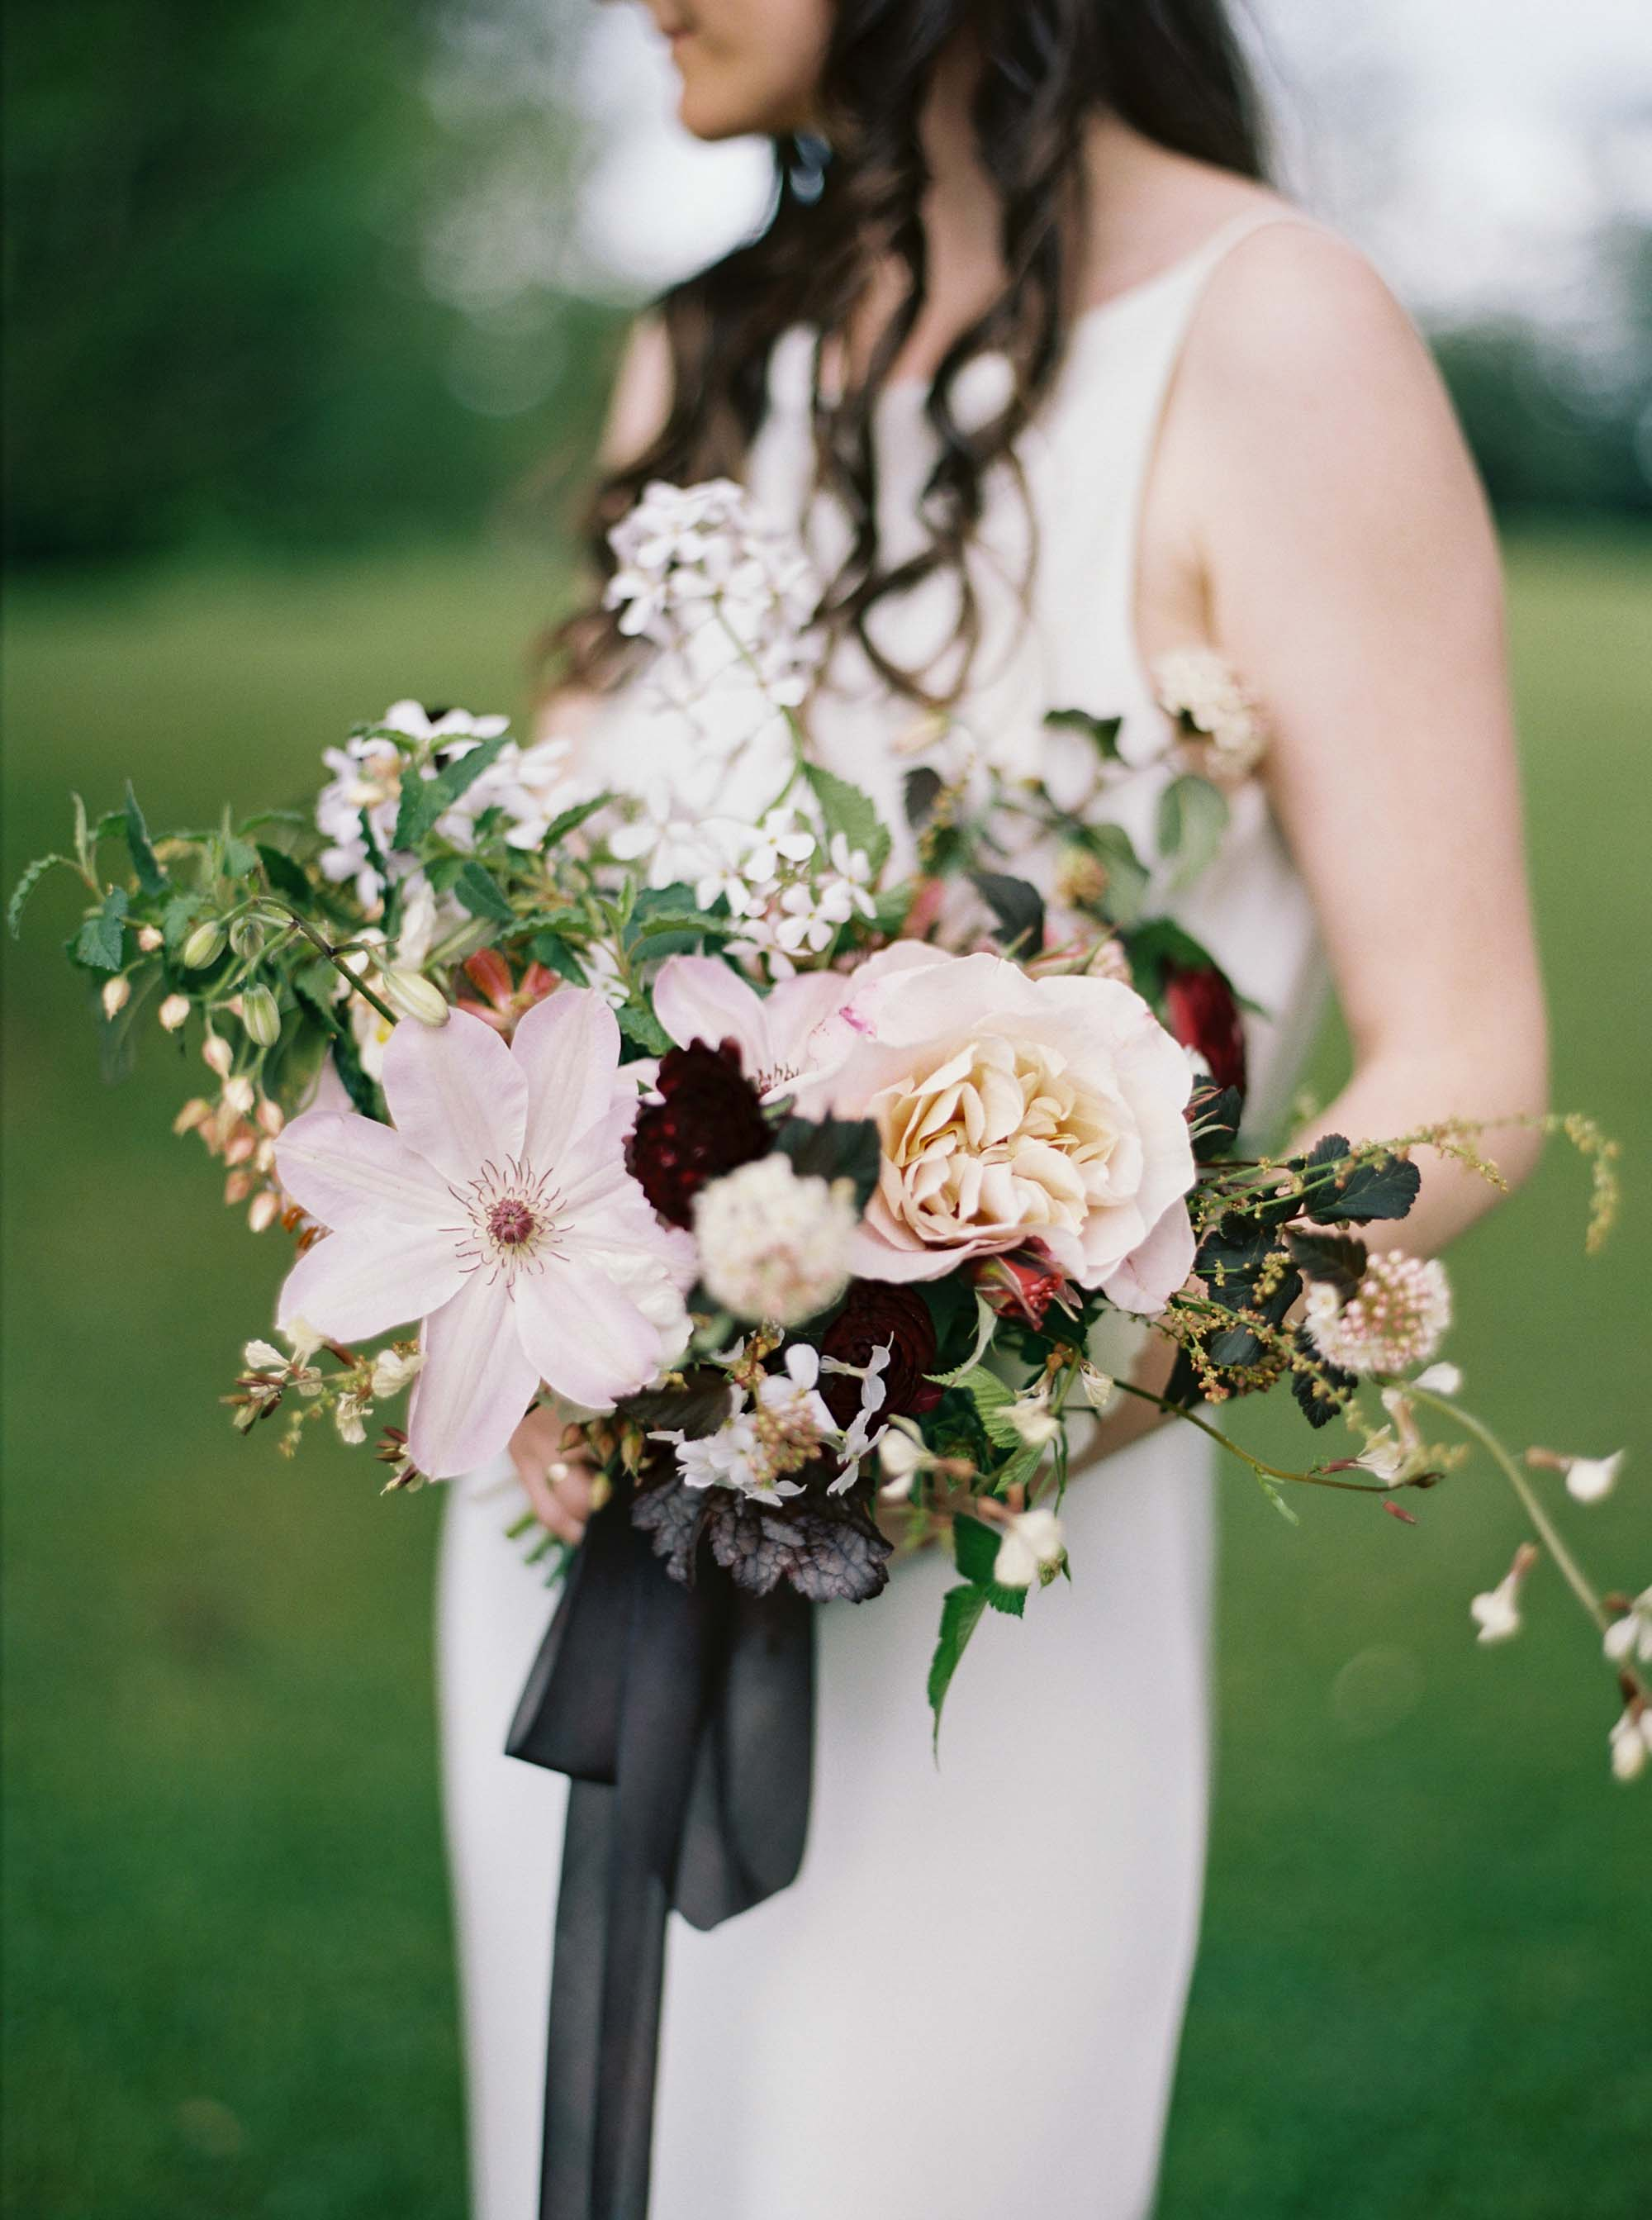 Lifestyle floral photography captured at Wildshoot Farm by Seattle Wedding Photographer Anna Peters